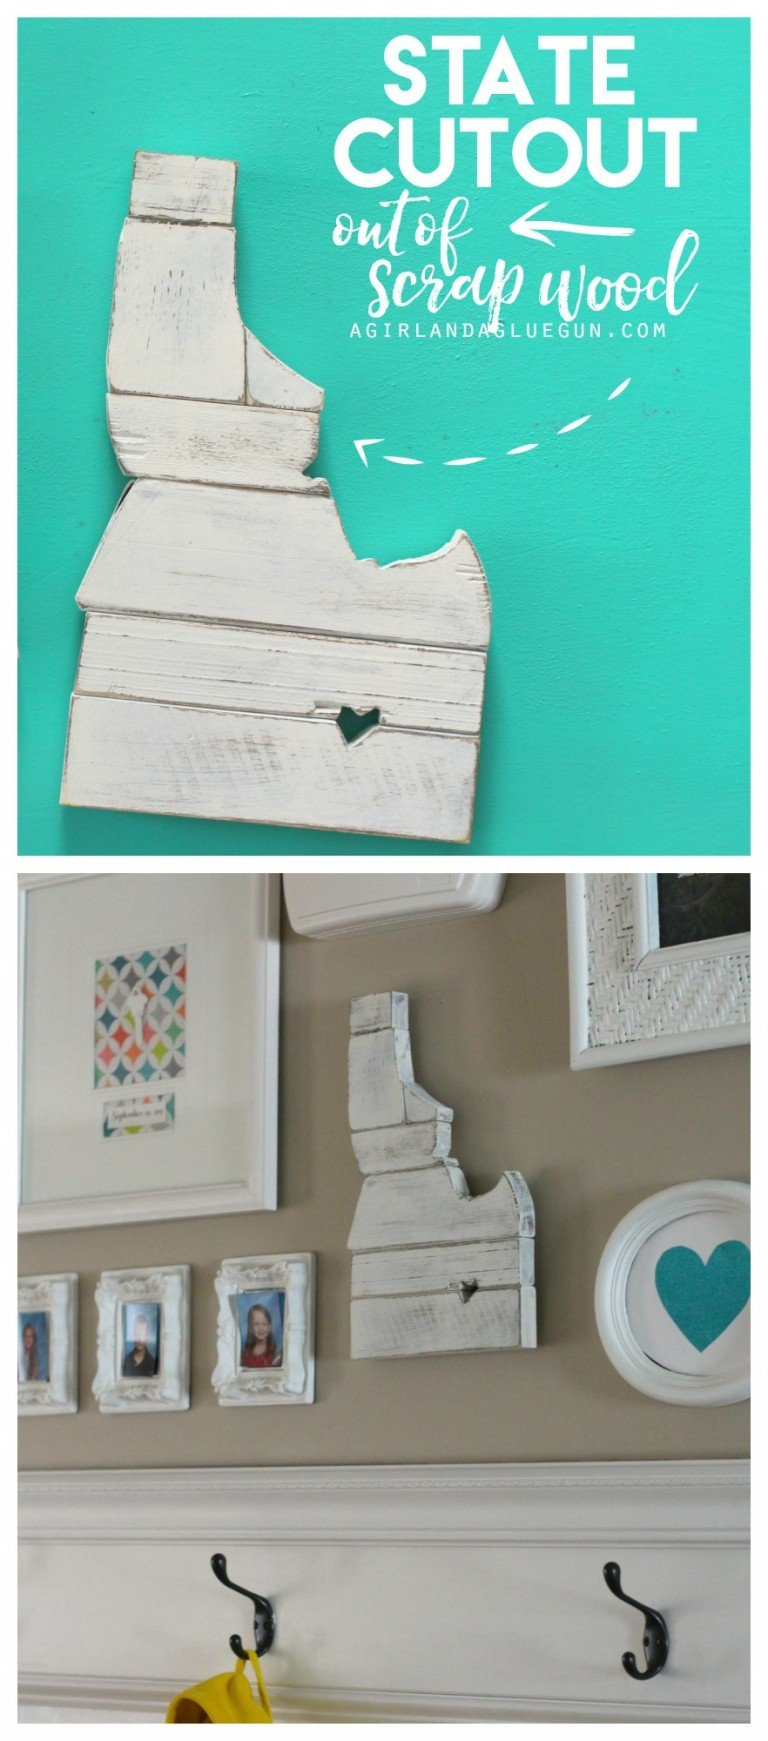 easy-and-fun-girls-night-craft-state-cutout-of-of-scrap-wood-768x1741